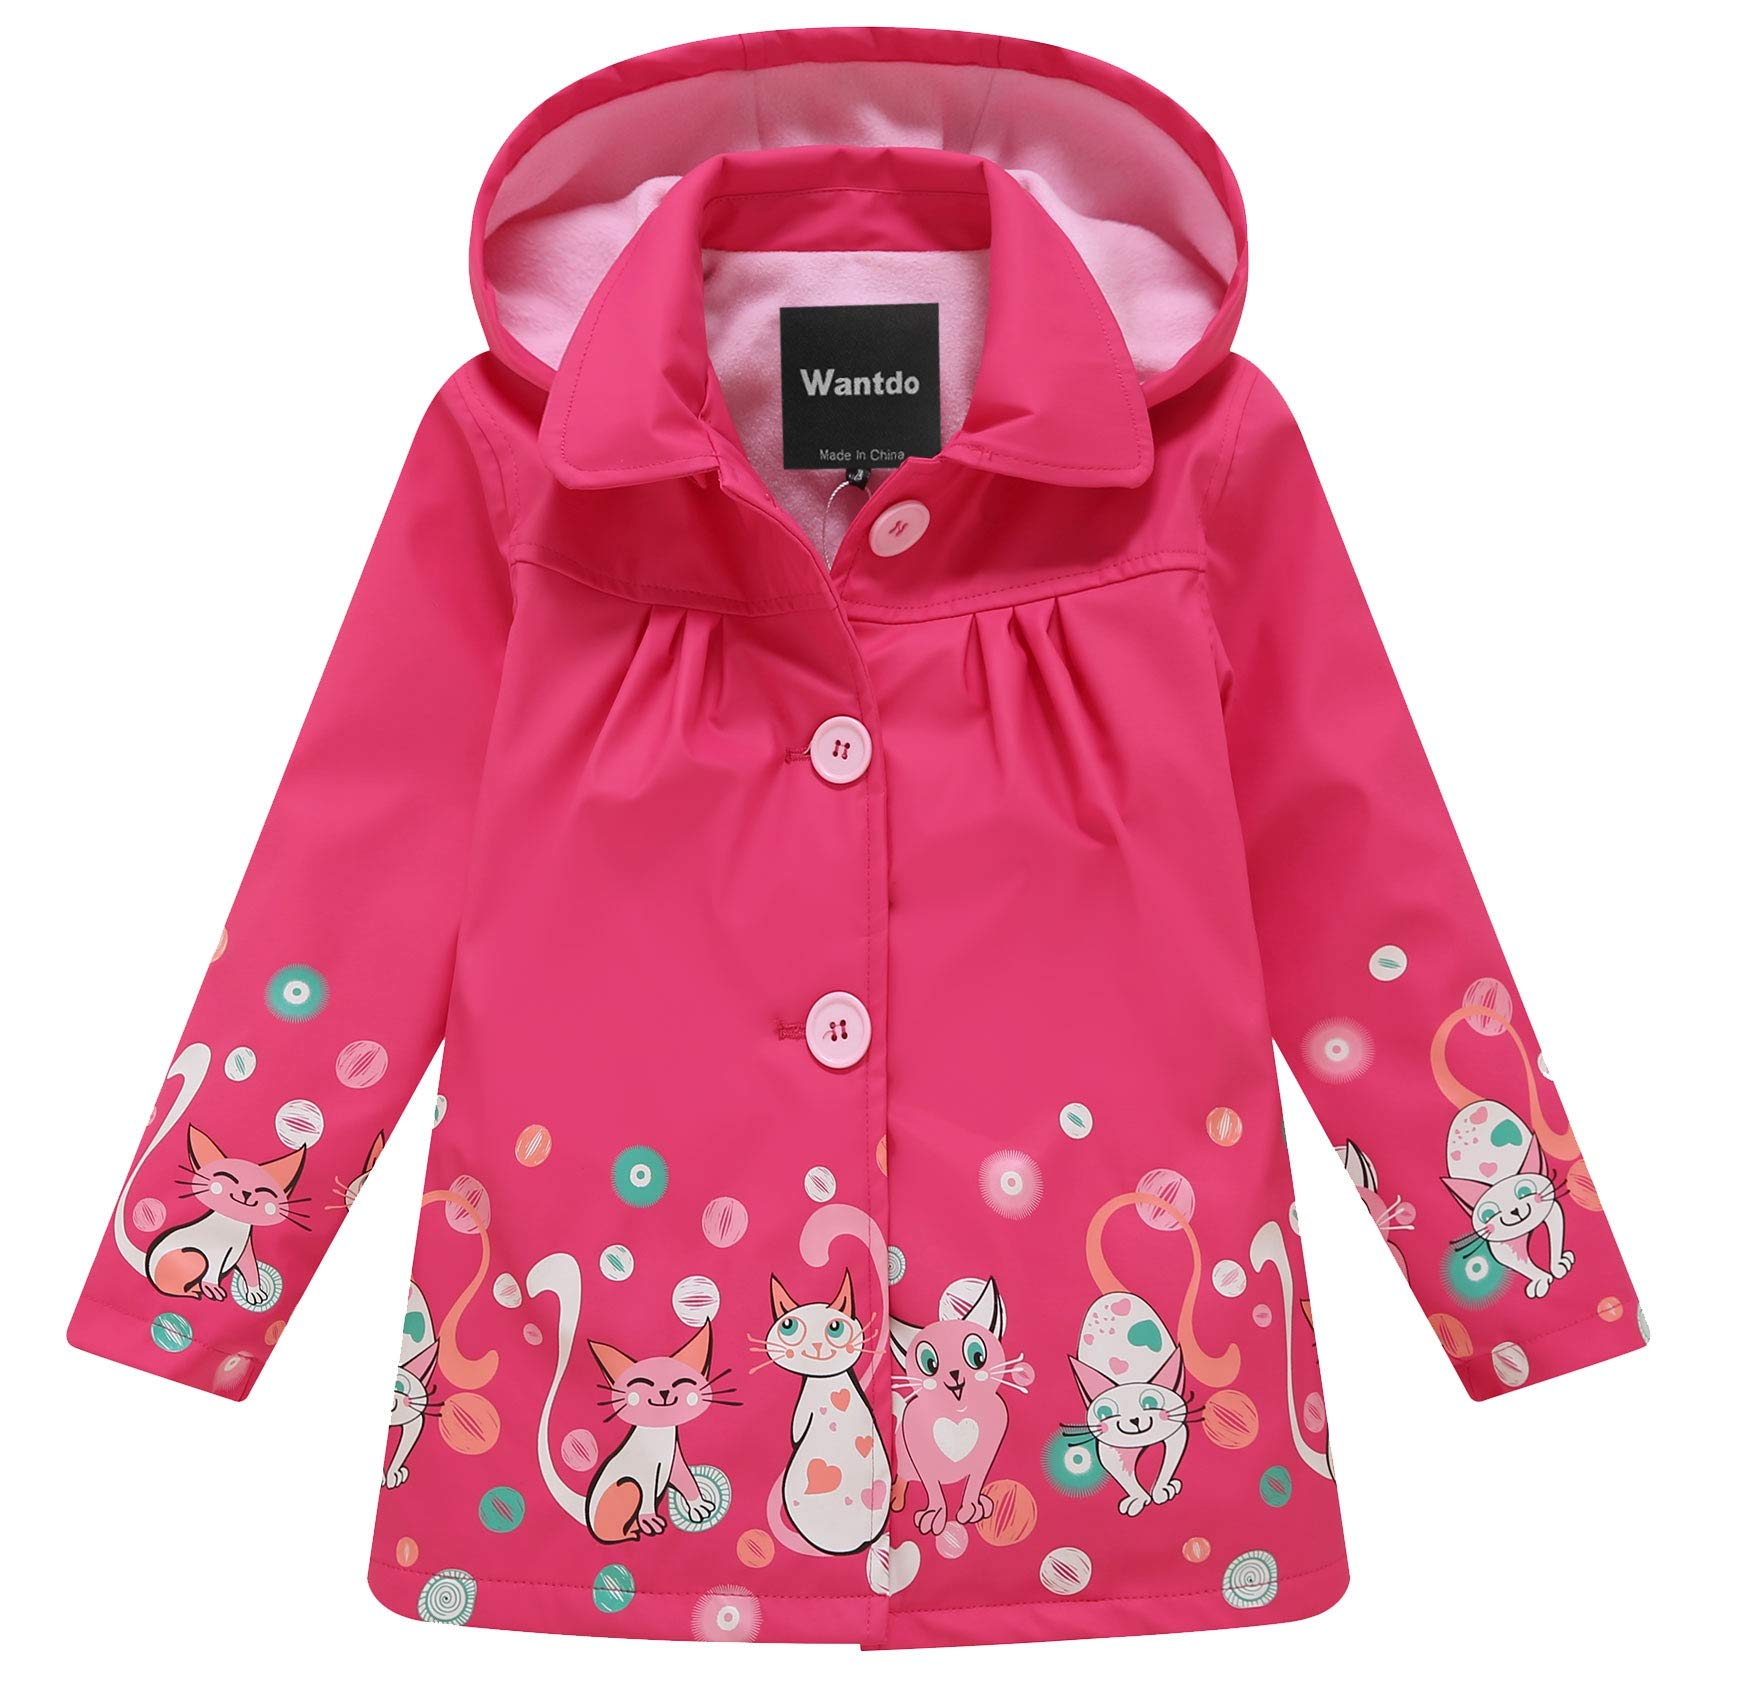 Wantdo Girl's and Boy's Soft Shell Raincoat Hooded Rain Jacket Waterproof Windbreaker(Rose Red, 8-9Y) by Wantdo